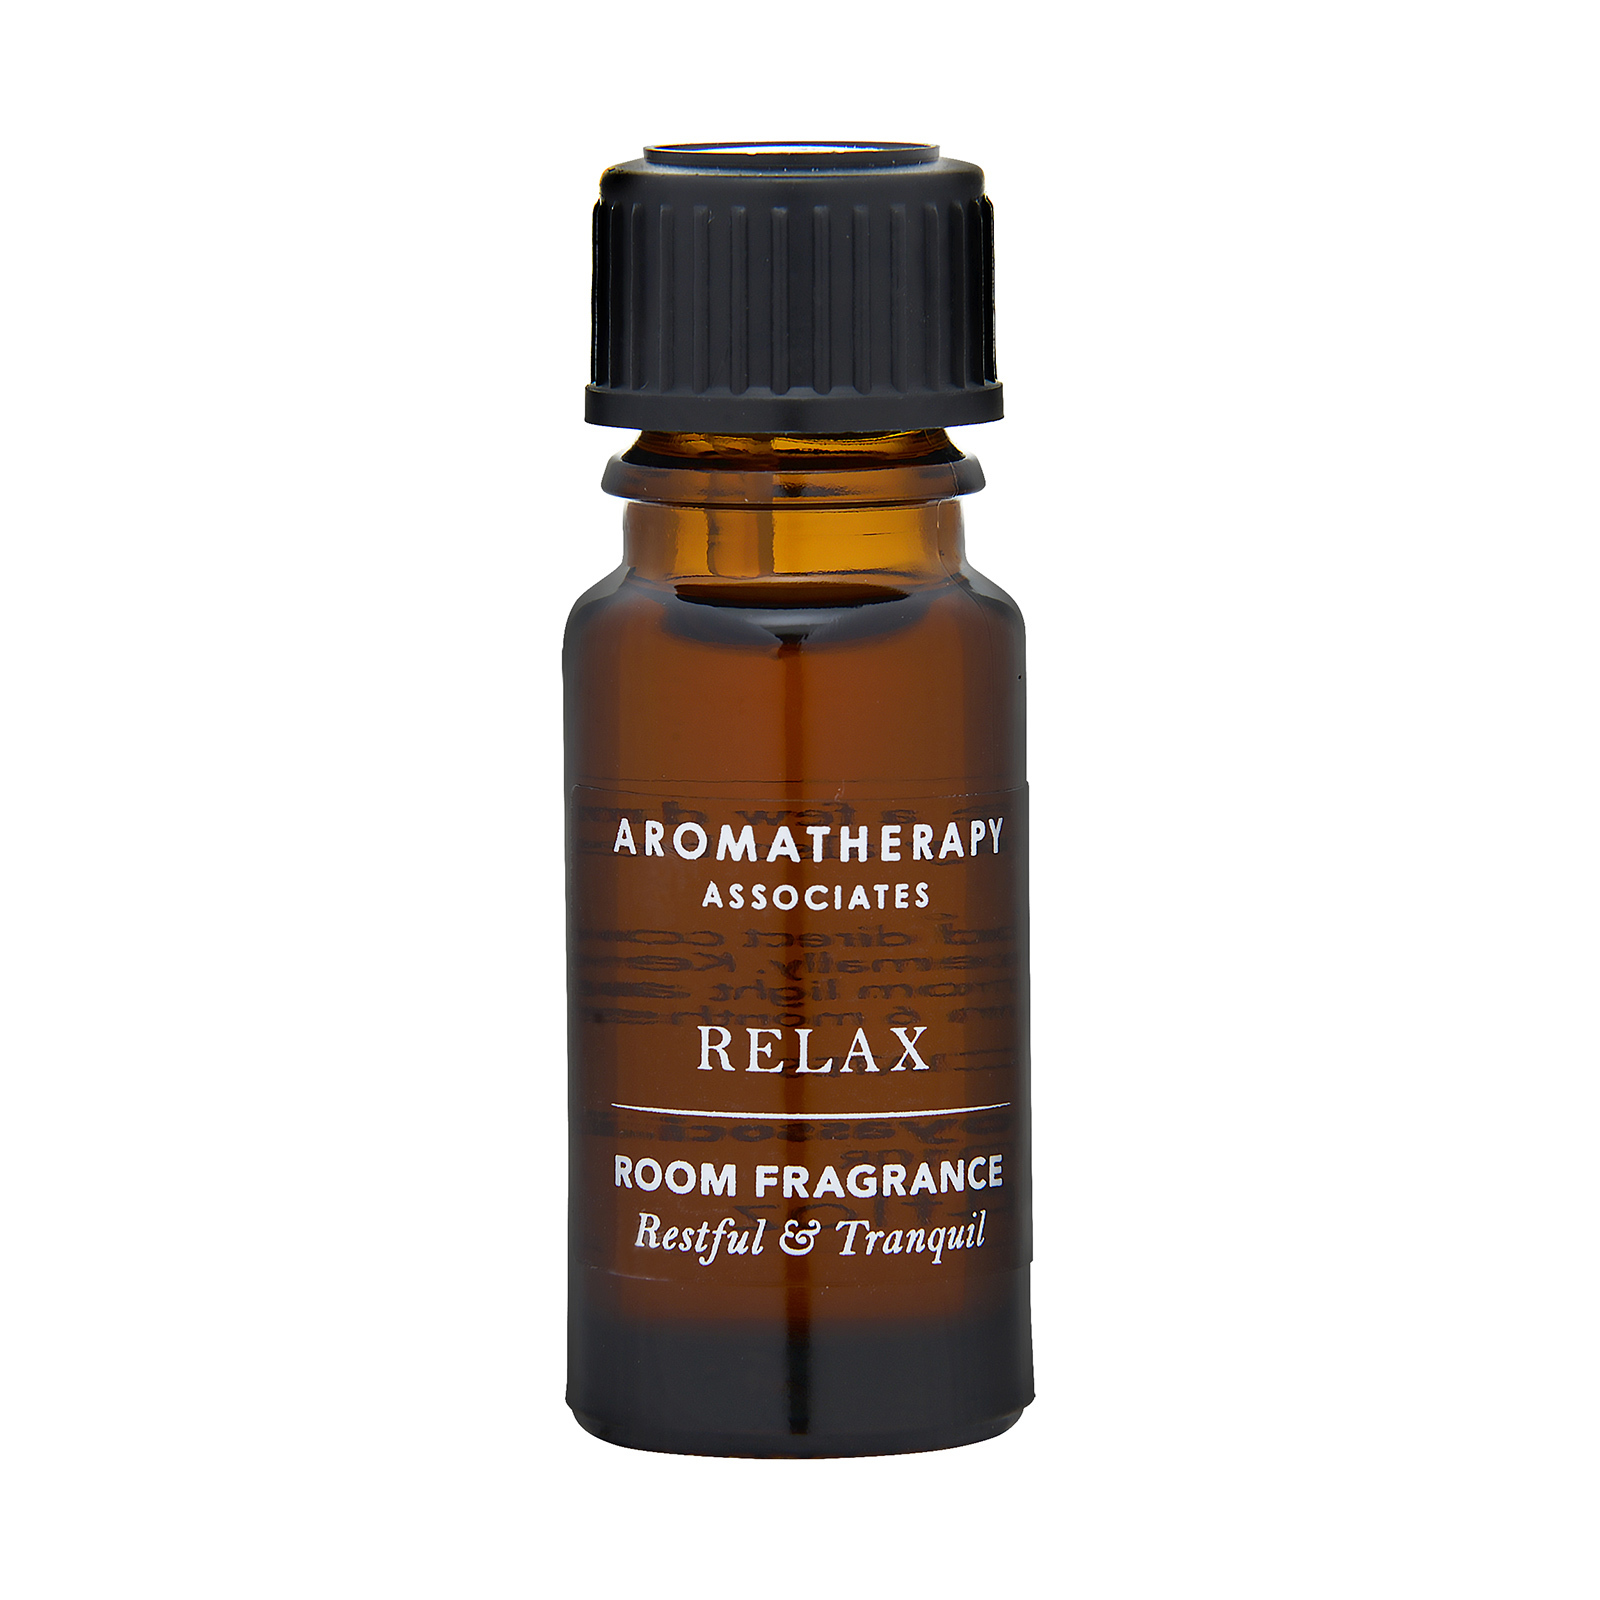 Aromatherapy Associates Relax Room Fragrance 0.34oz, 10ml (EXPORT)